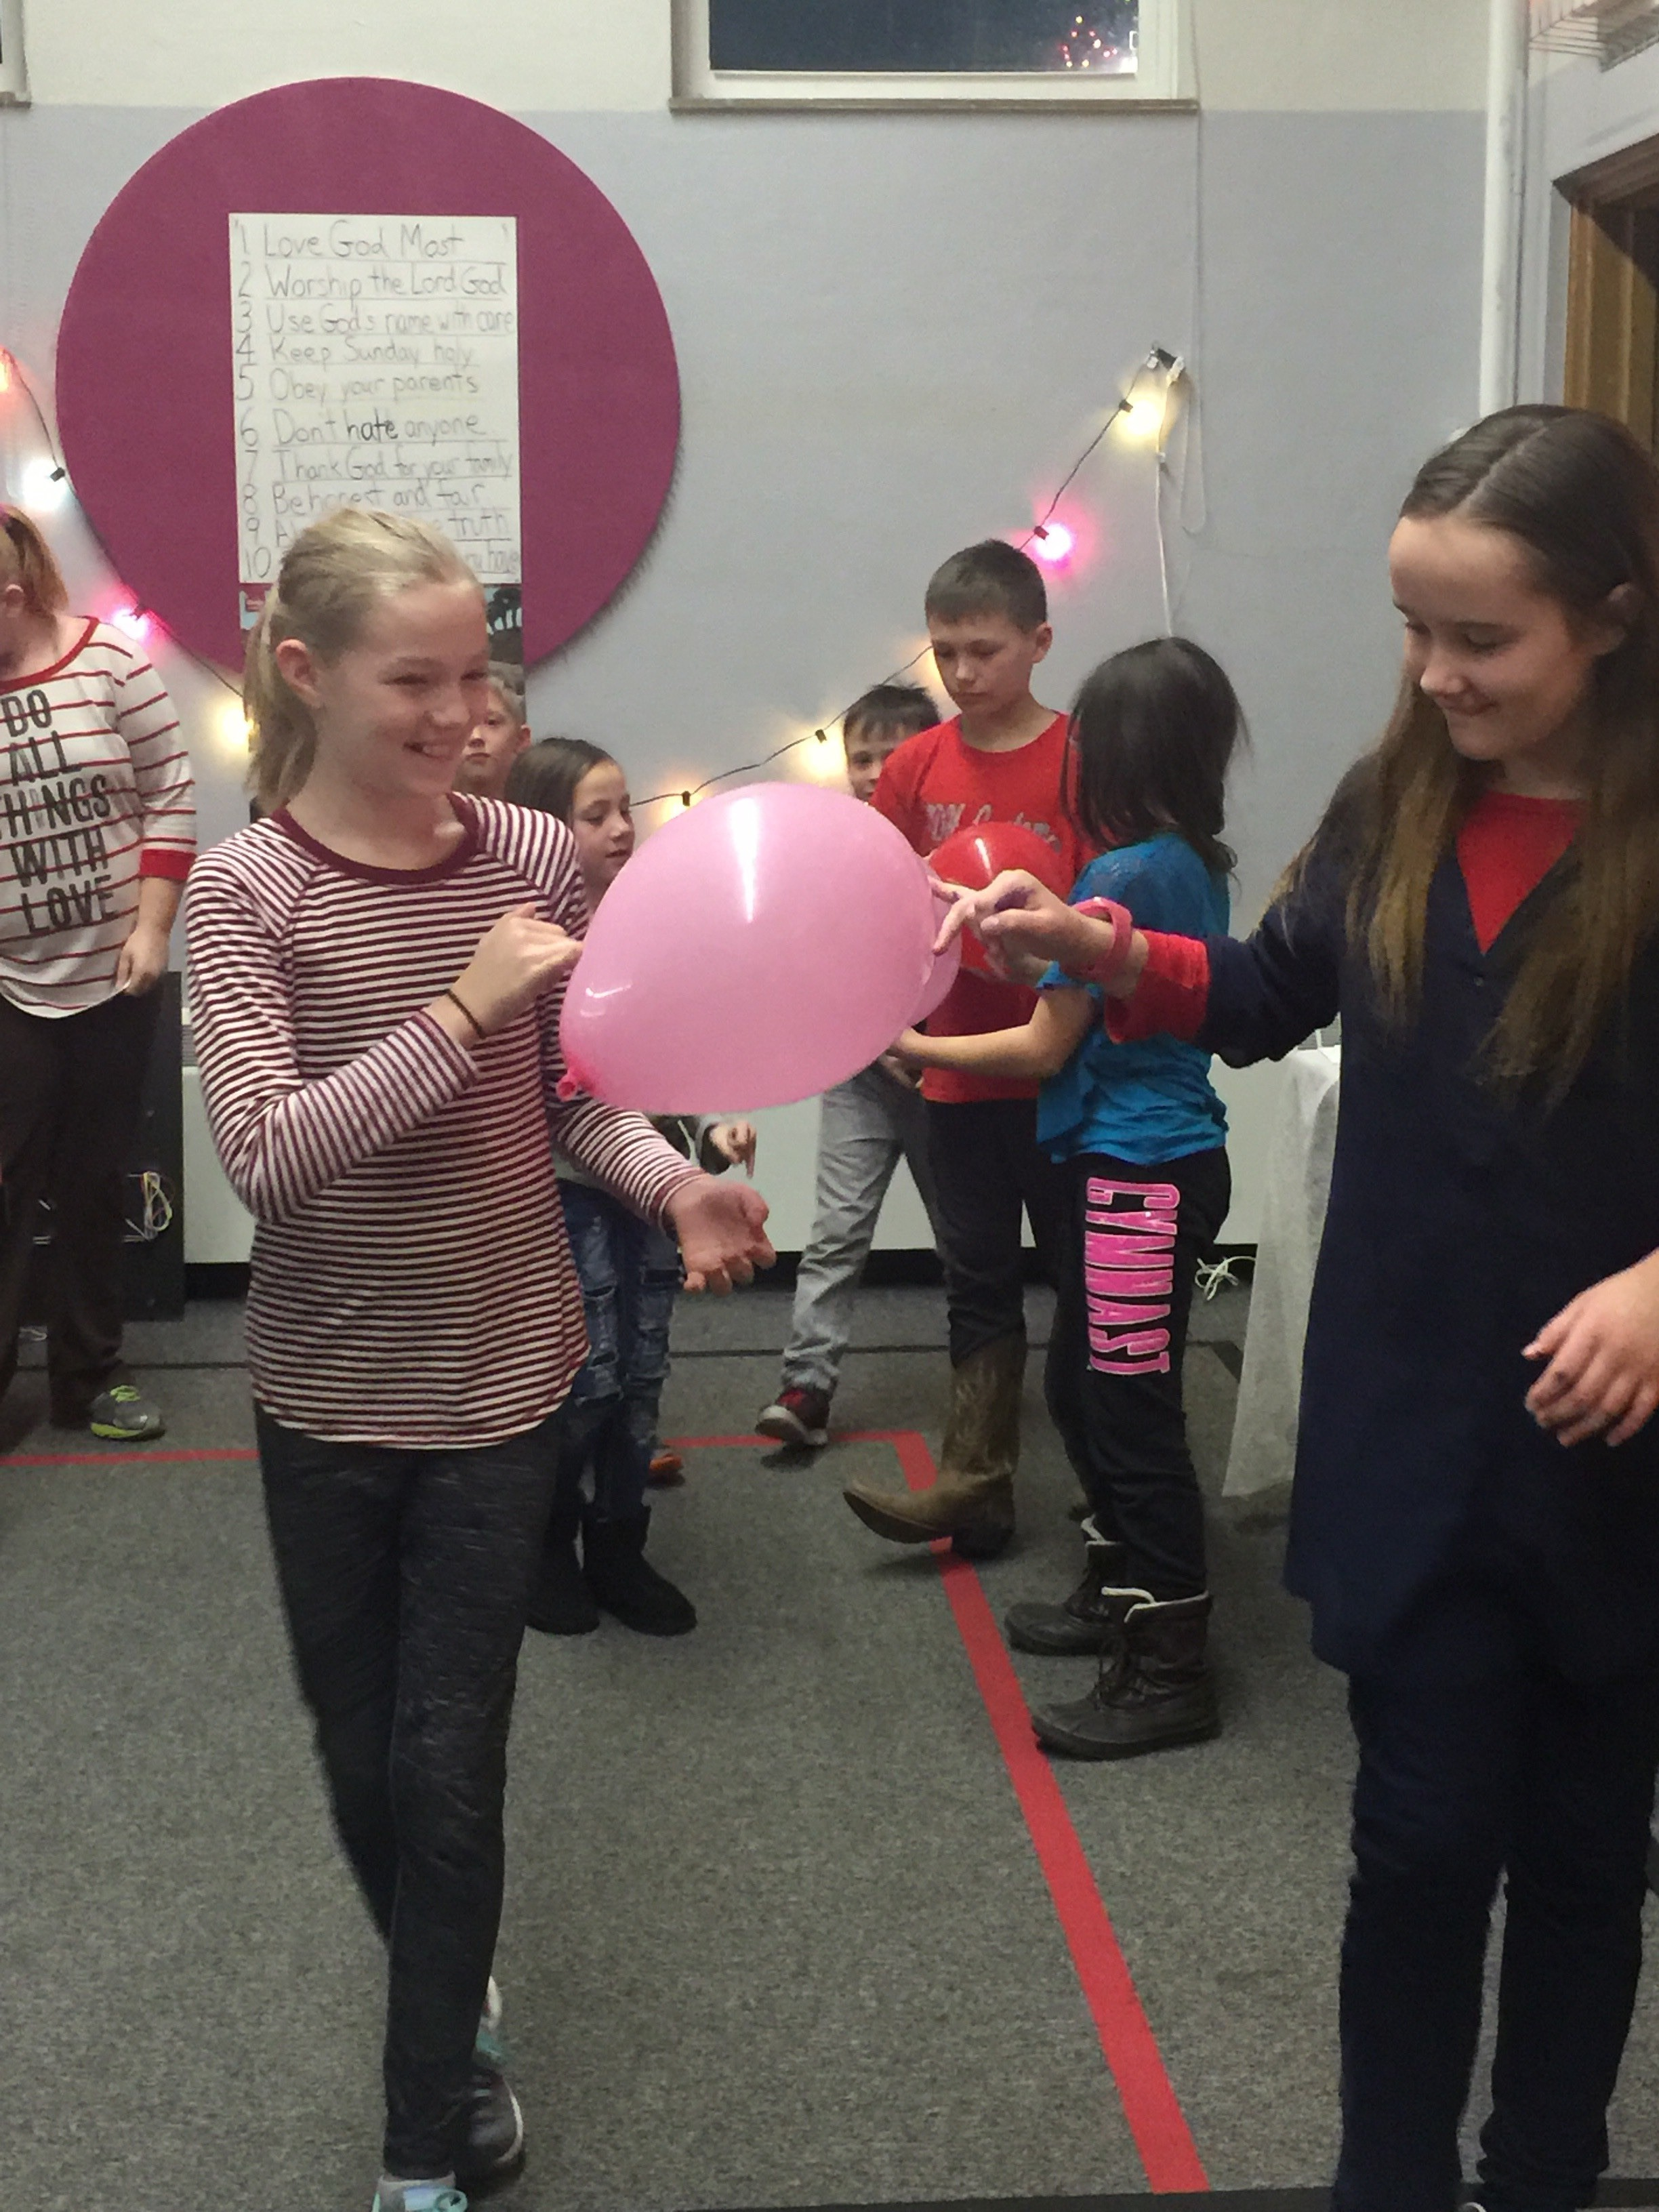 Our lesson tonight was on Naomi and Ruth and traveling from Moab to Bethlehem. We worked in teams of 2 and had to 'travel' with the balloon held a certain way. Our Naomi and Ruth (aka Daisy) started the journey. The could only hold the balloon by their pinkies.